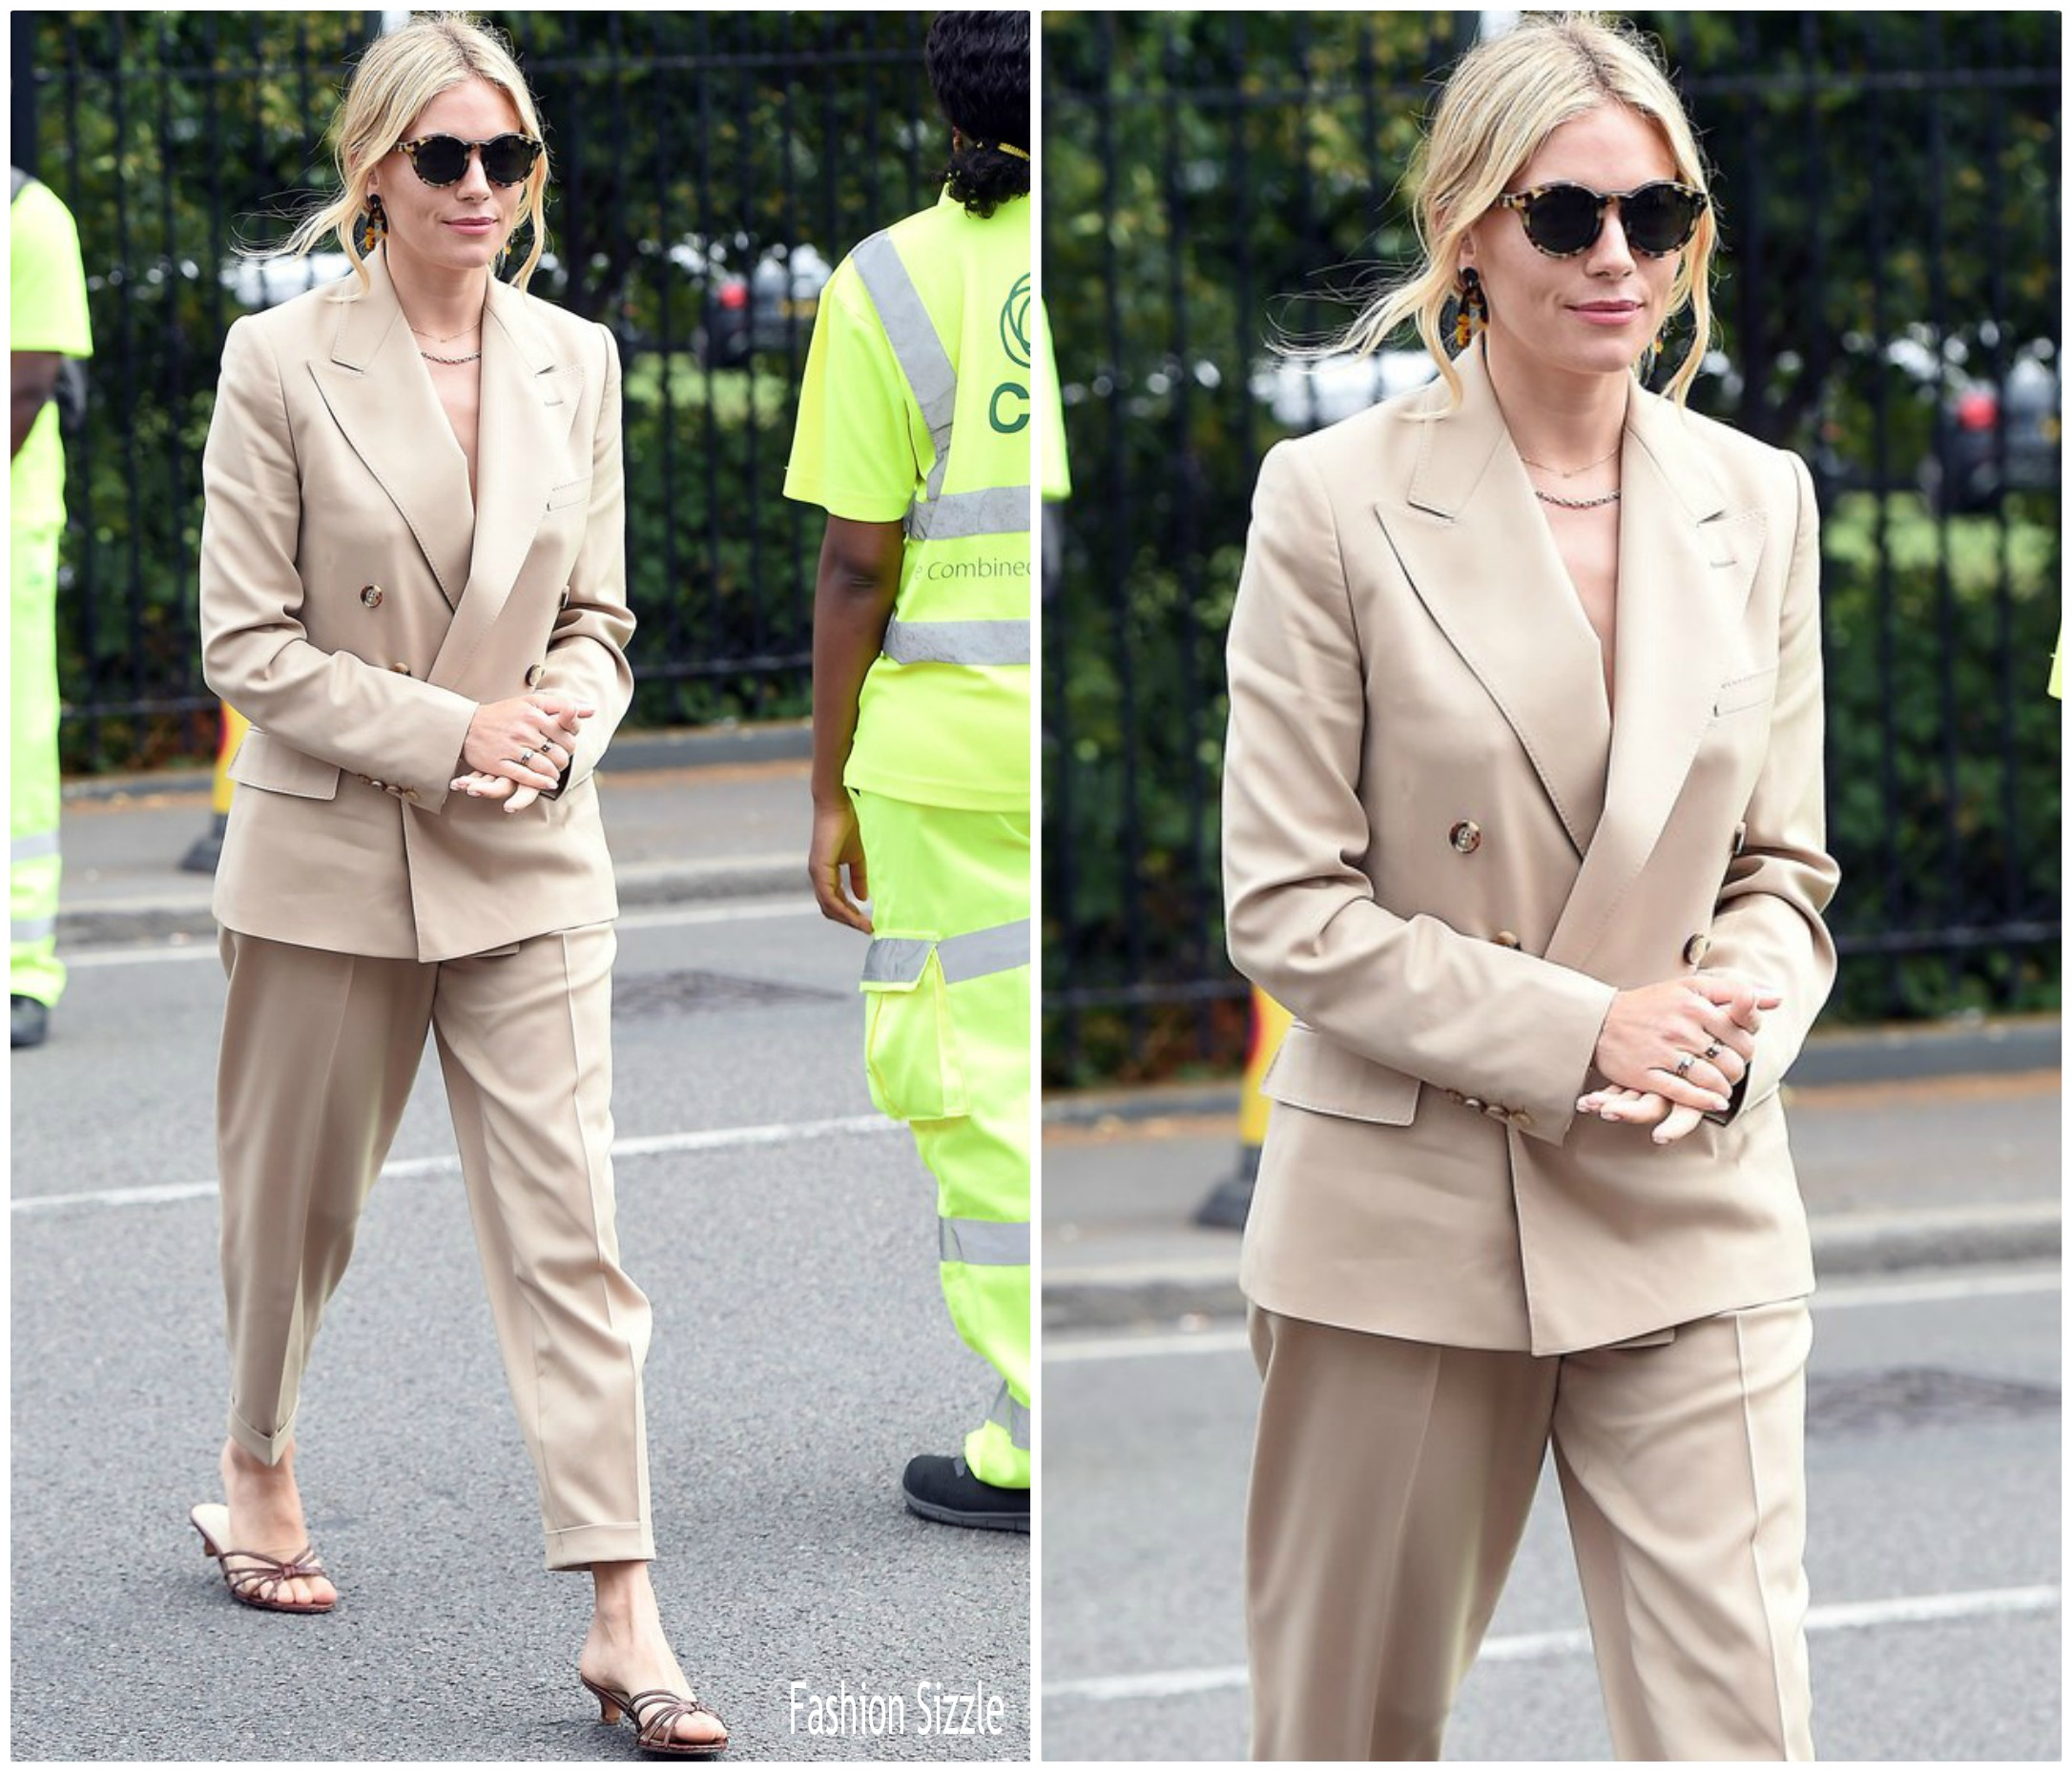 sienna-miller-in-ralph-lauren-collection-wimbledon-2019